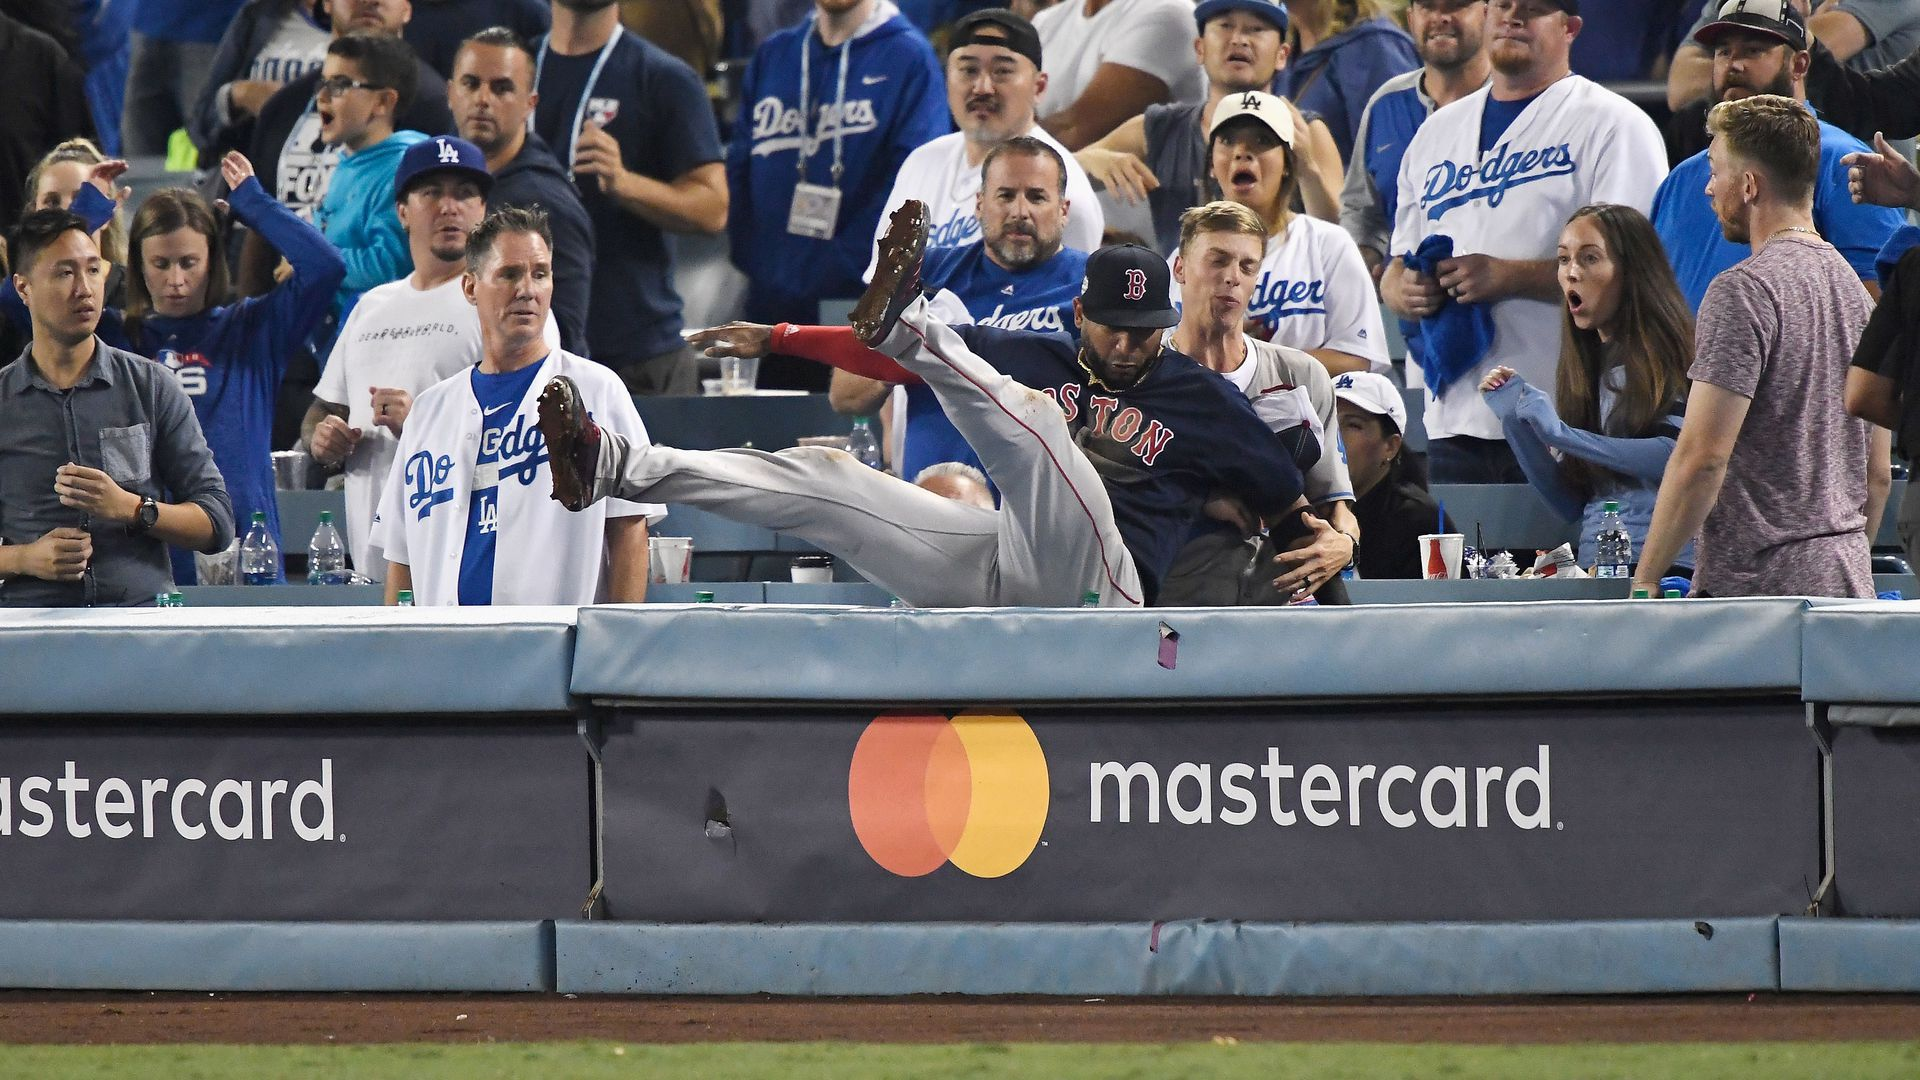 Boston mlb player falling backward into the stands.